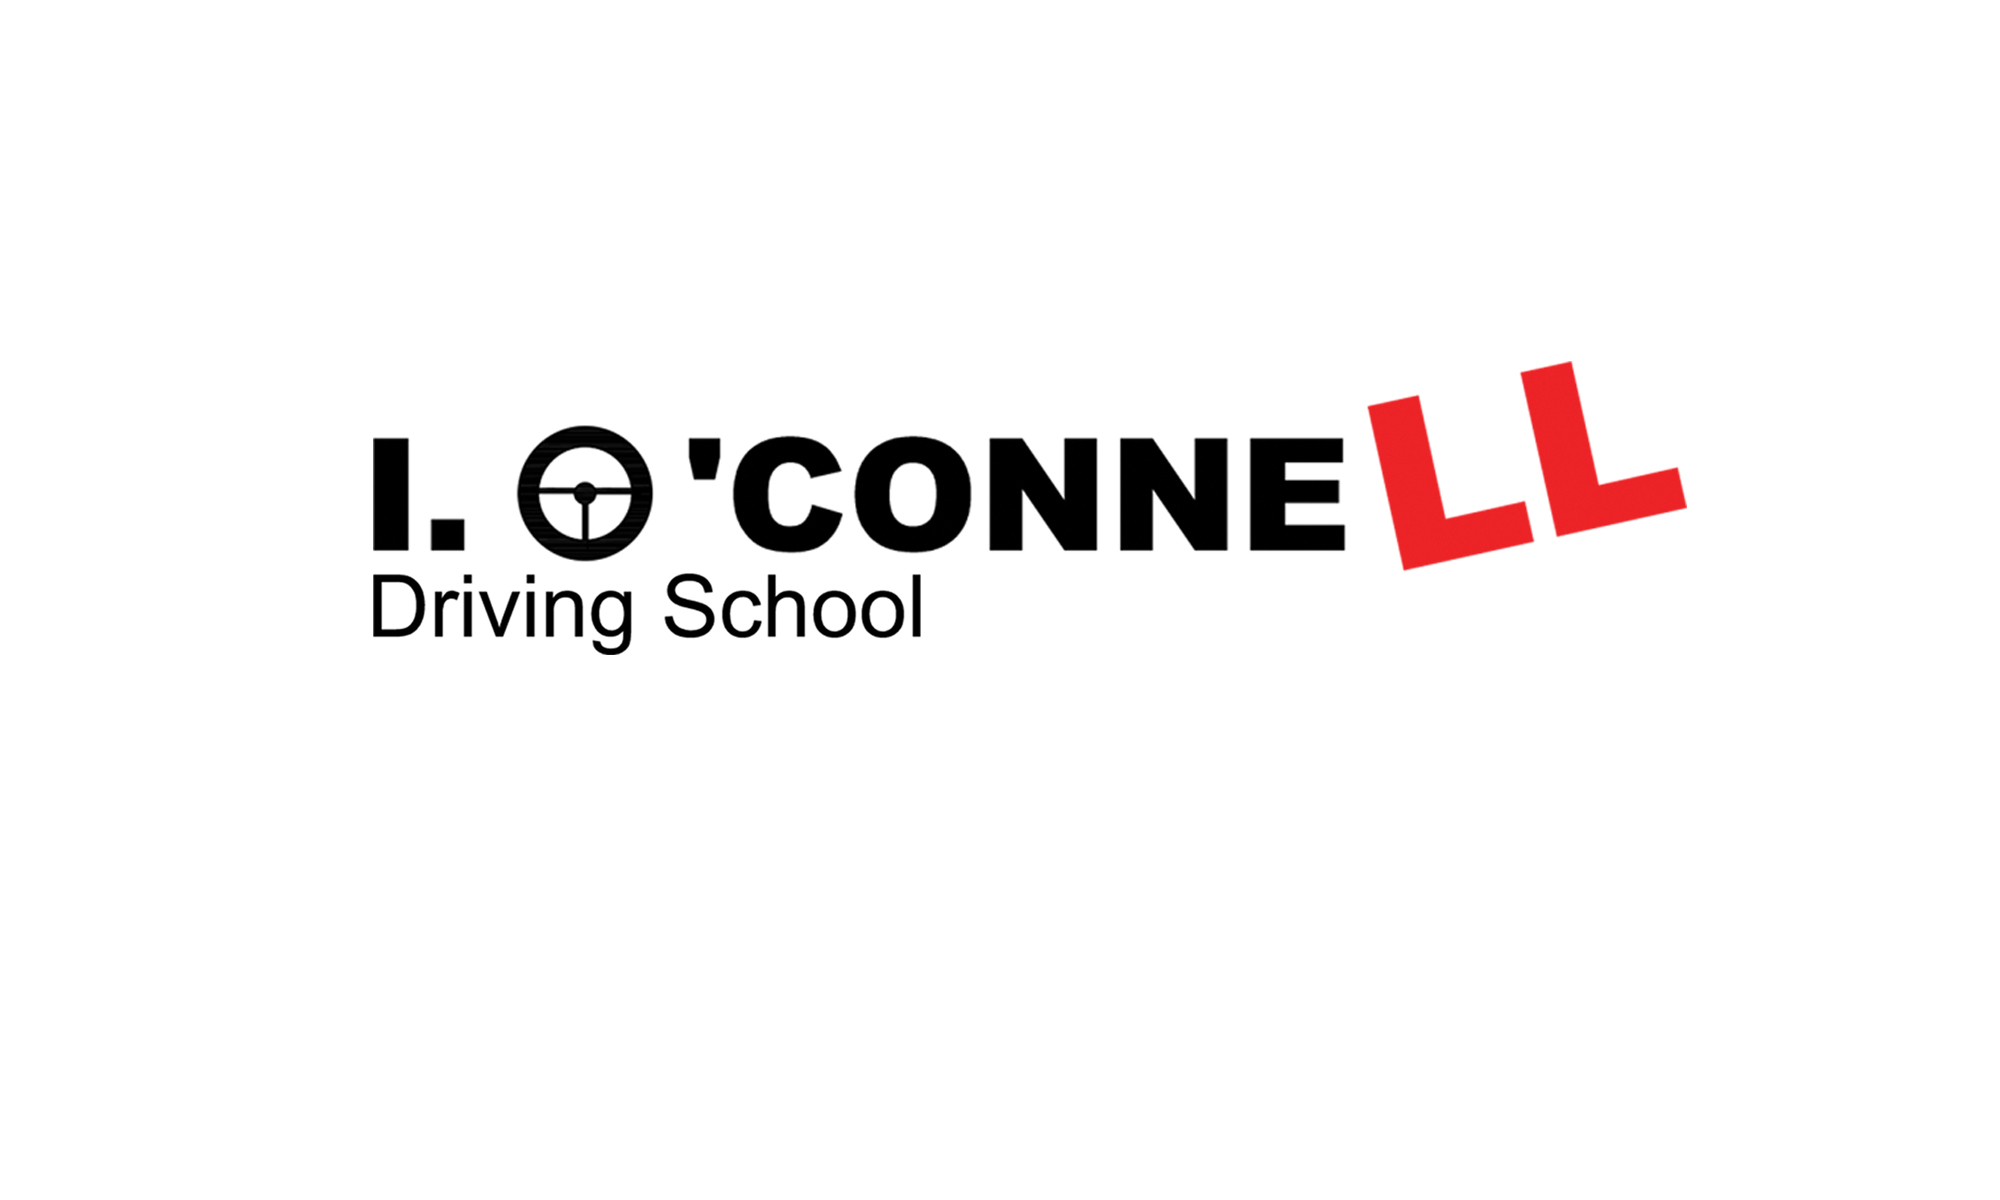 OConnell Driving School